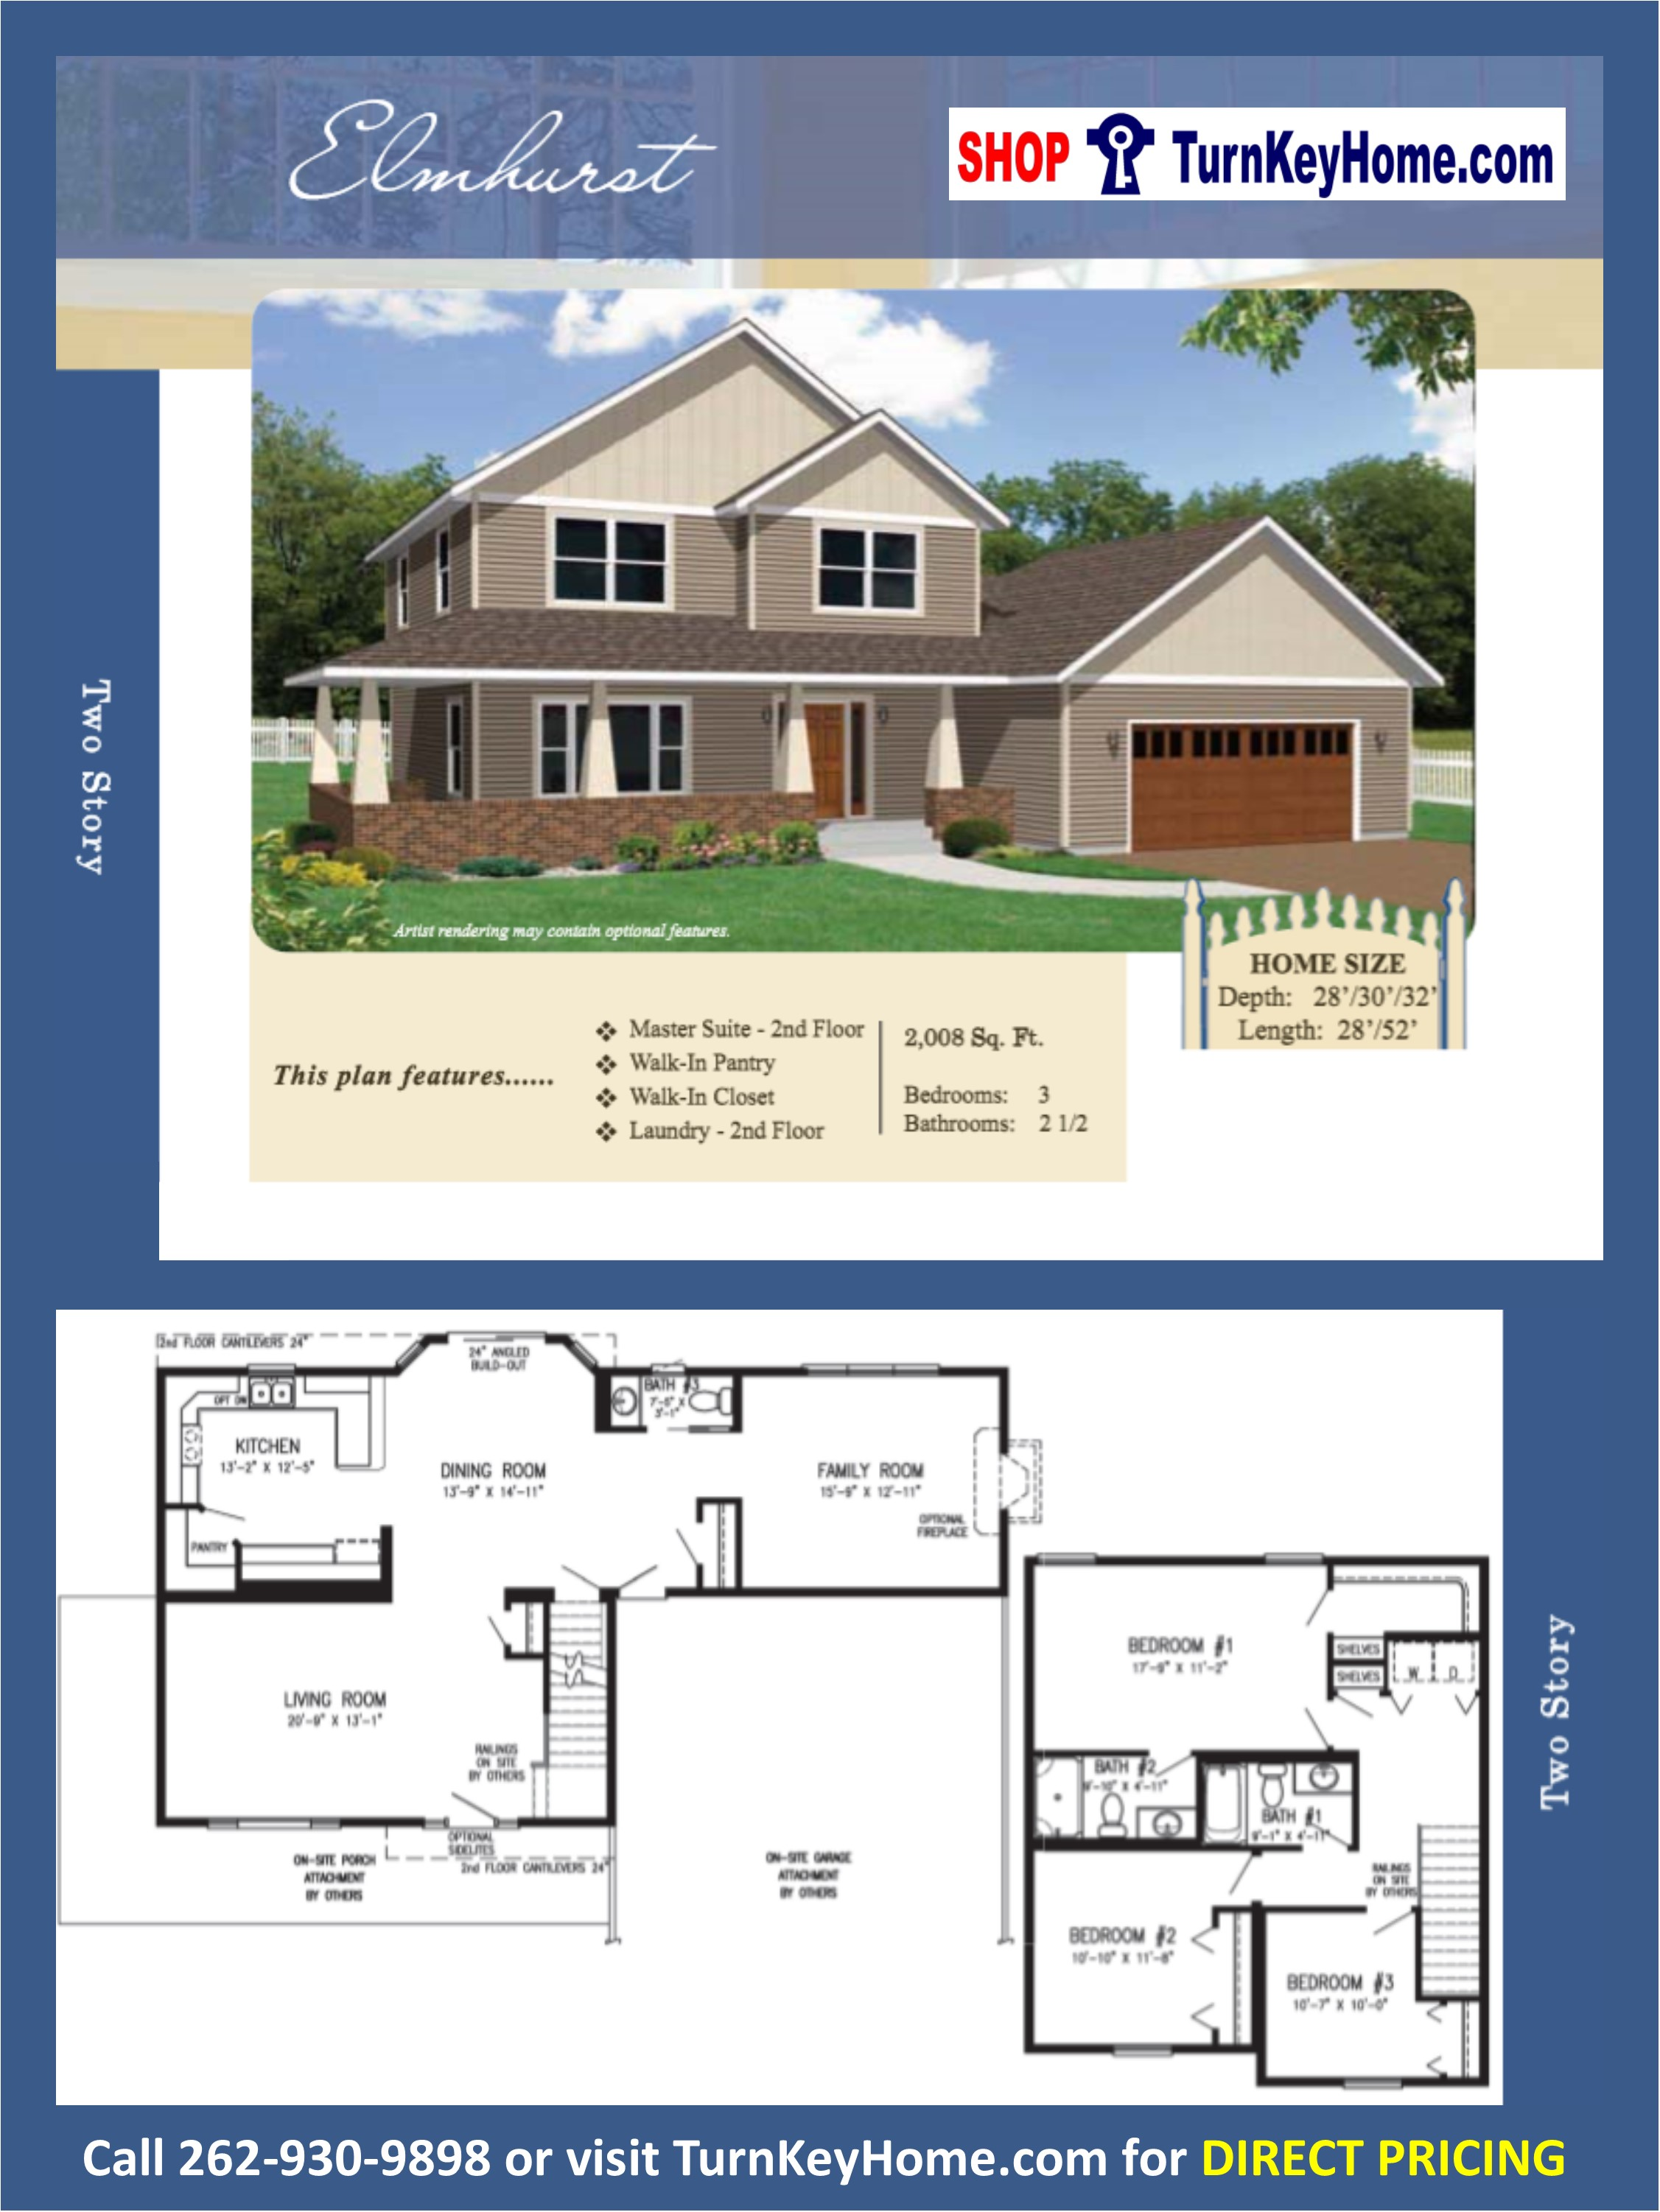 ELMHURST Two Story Home 3 Bed 2.5 Bath Plan 1008 SF Priced From ...